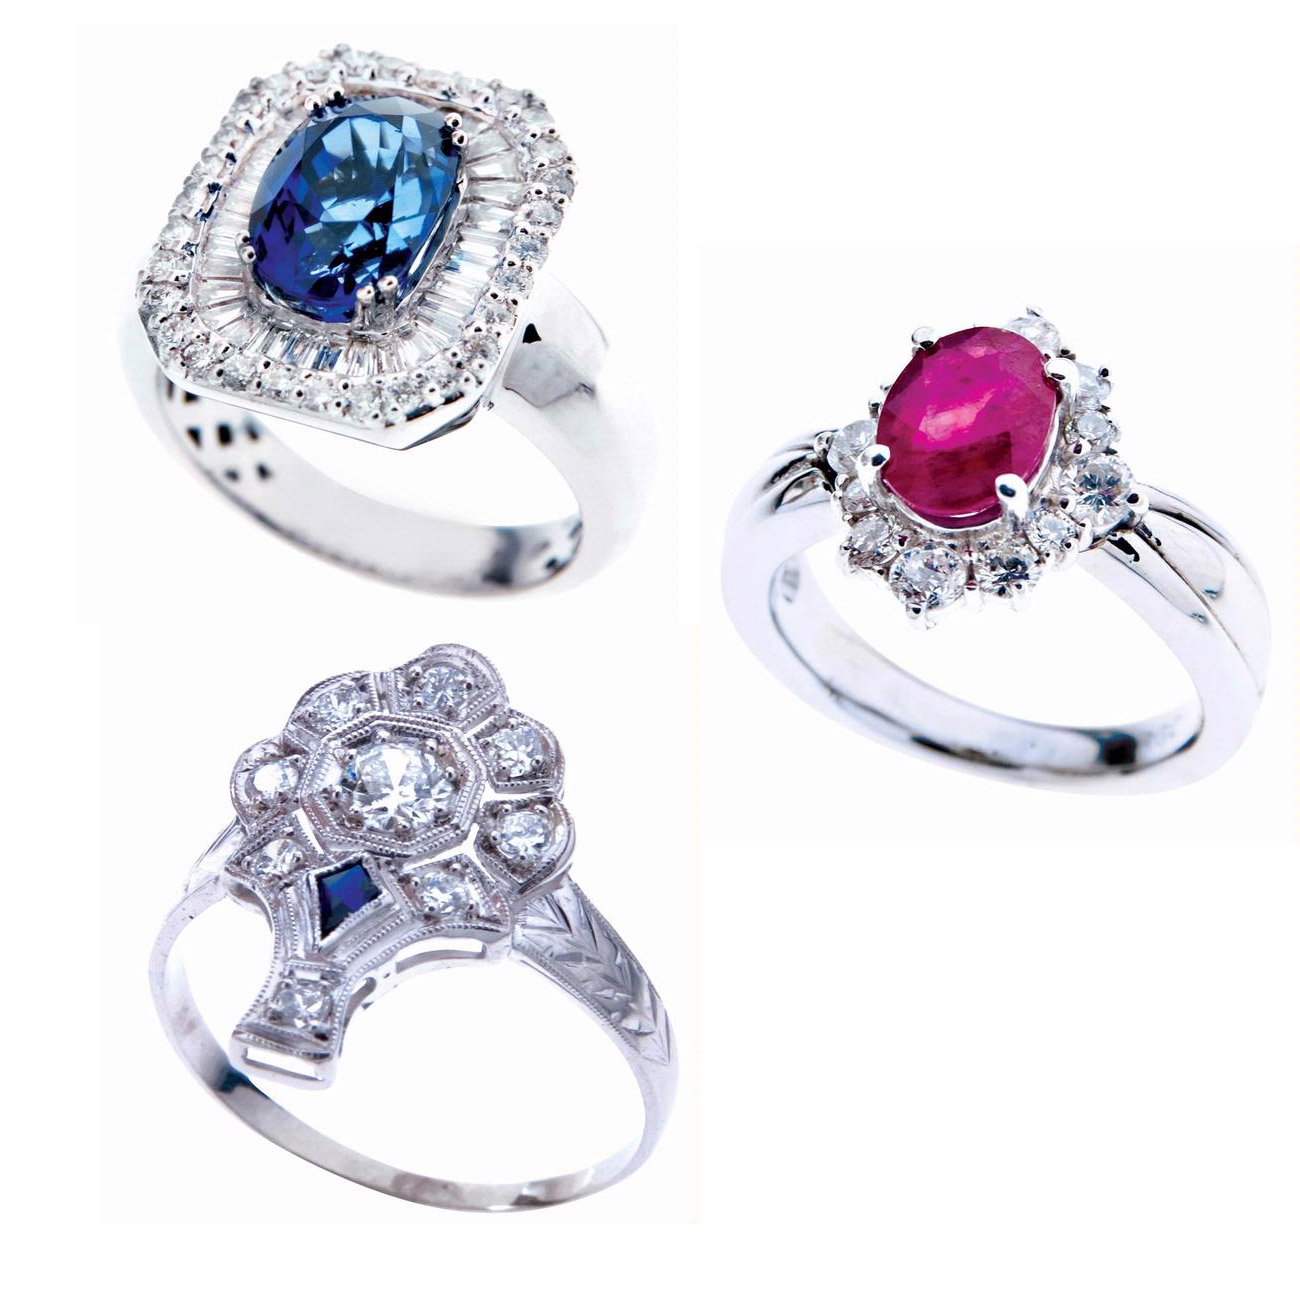 ring s engagement gemstone rainbow colorful titanium women rings silver steel